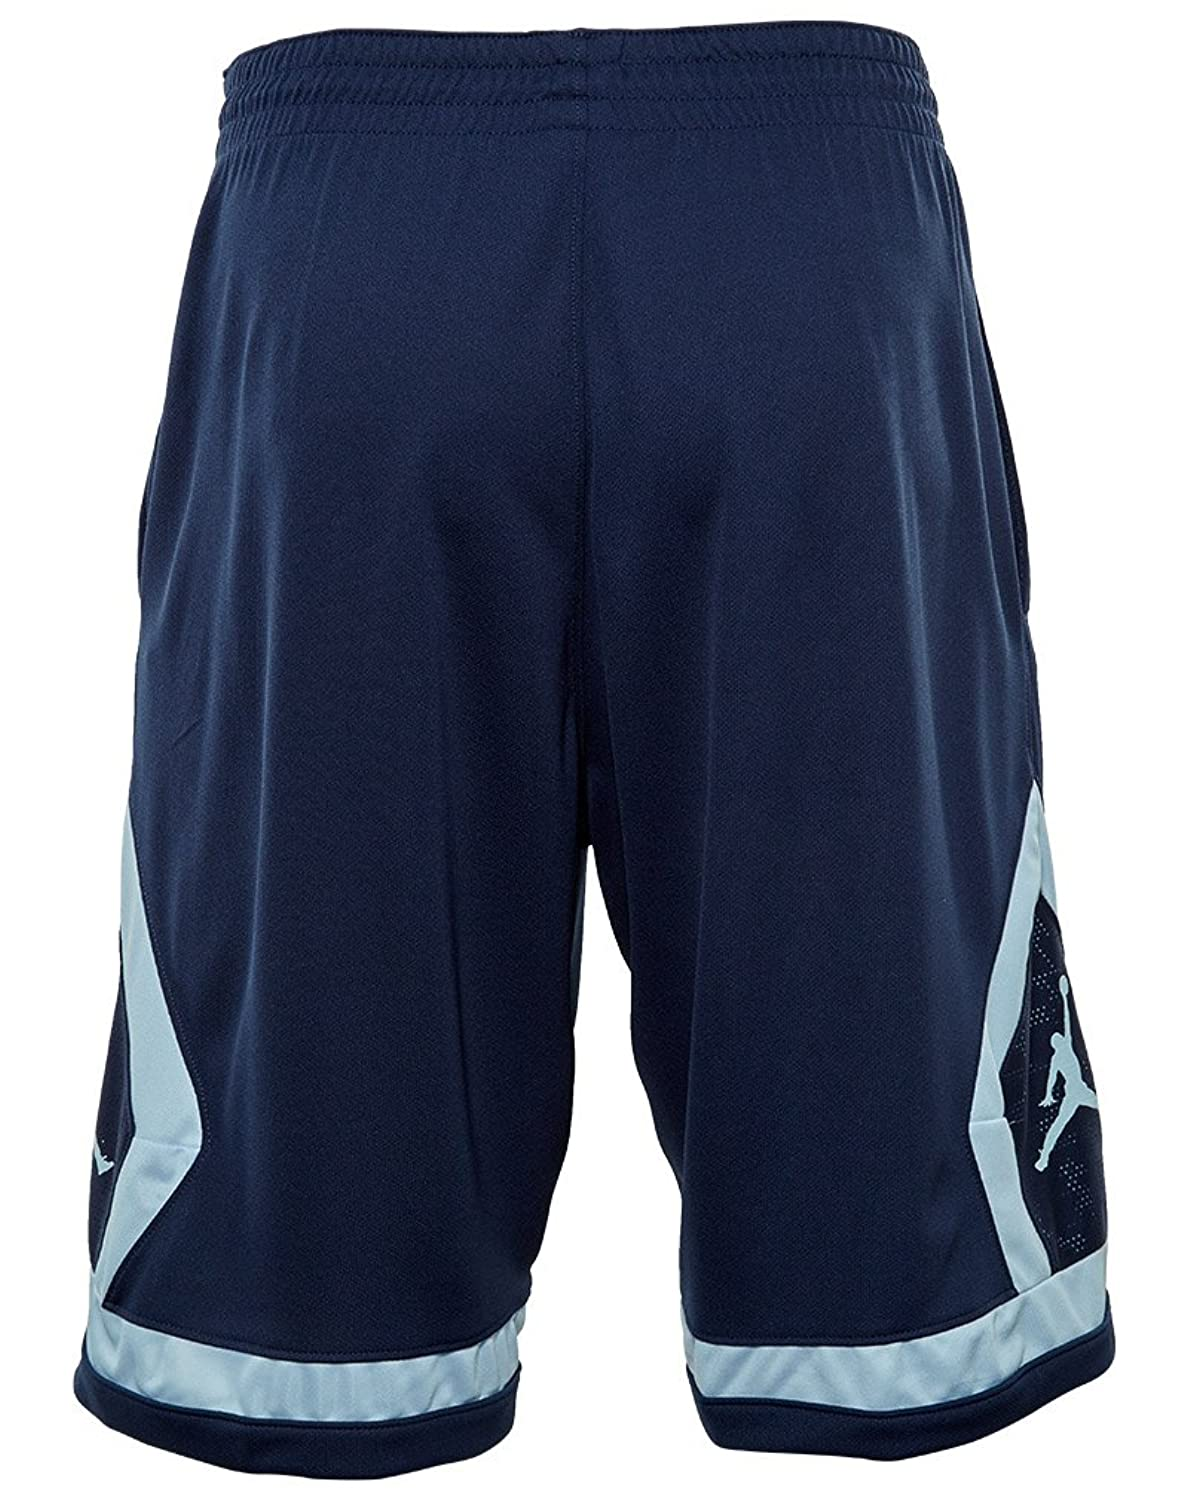 dda1773ea325 Amazon.com  Jordan Flight Diamond Basketball Shorts Mens  Sports   Outdoors